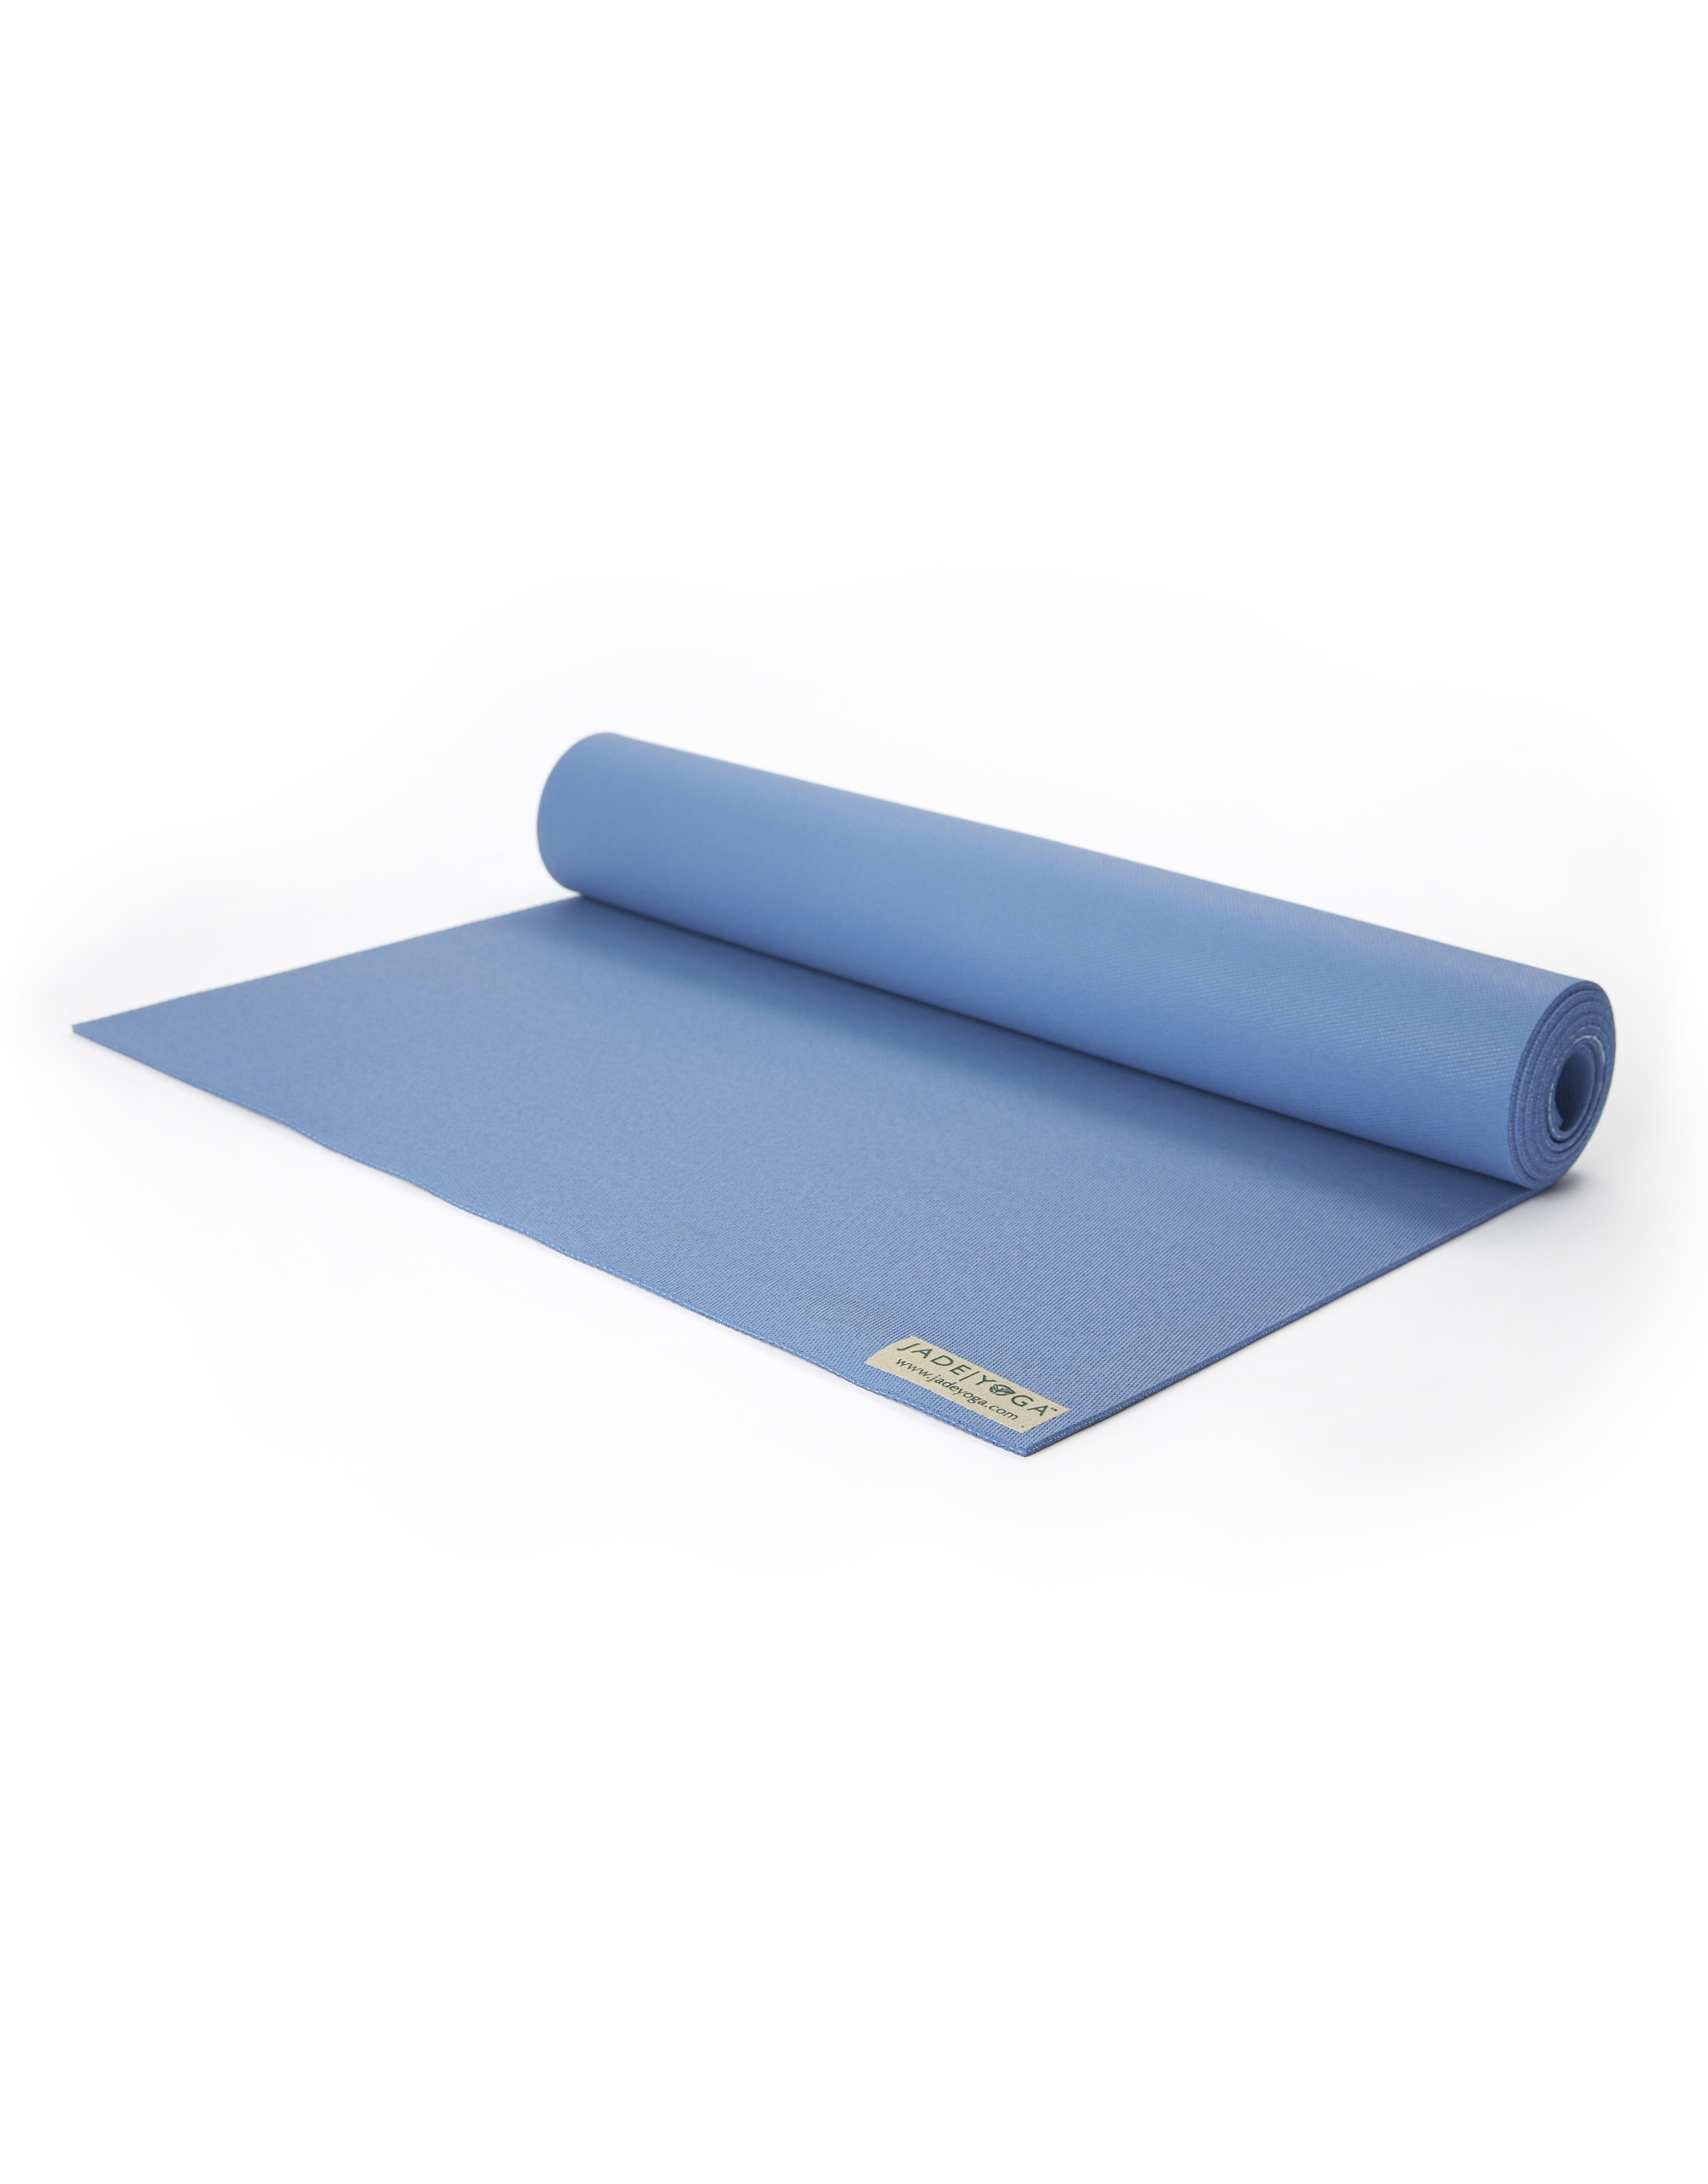 download best free yoga quality the mats wallpapers mat high wallpaper